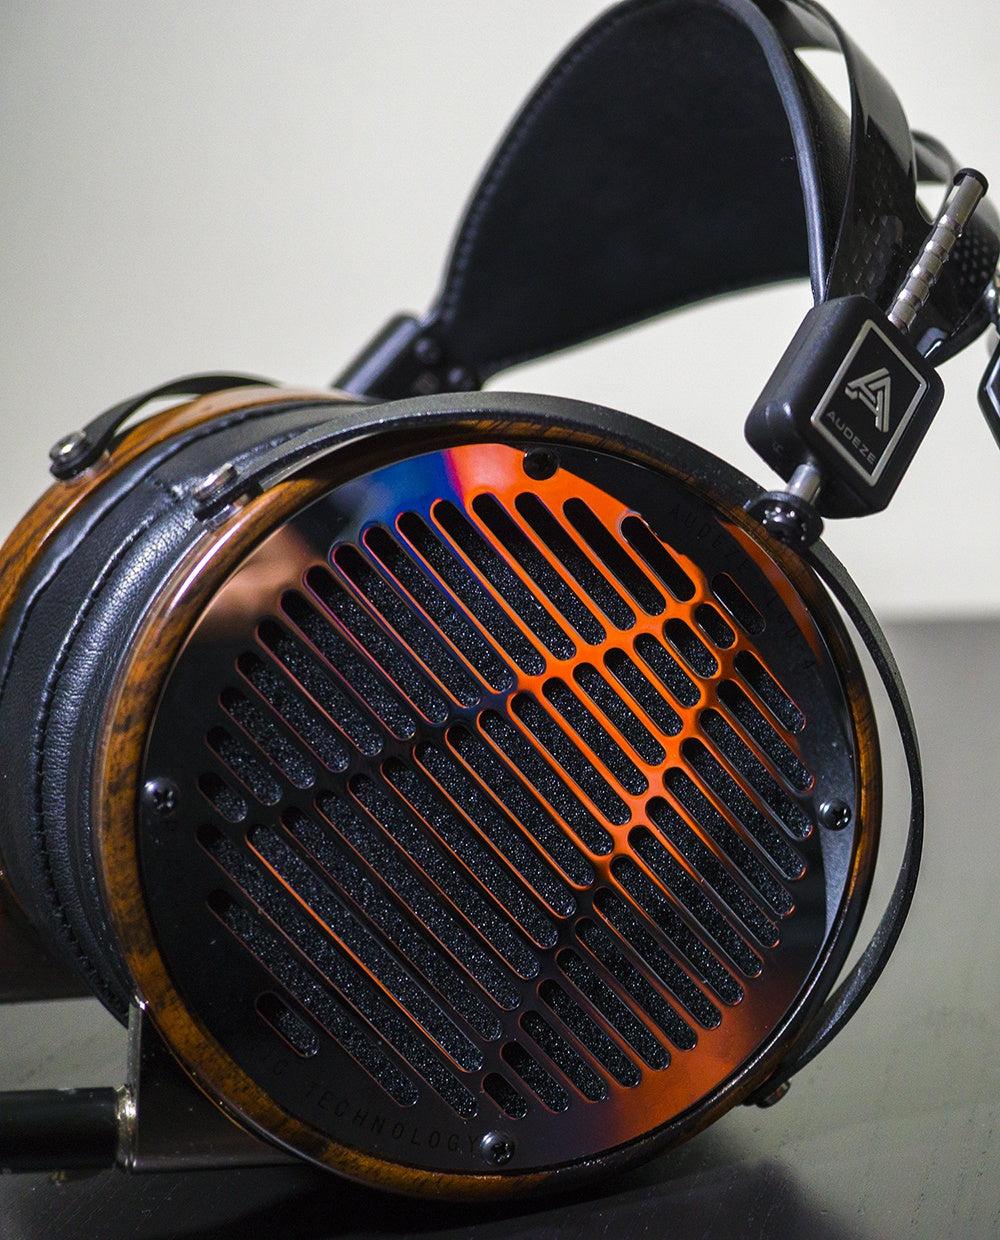 Headphones.com The Best High-End Headphone Brands